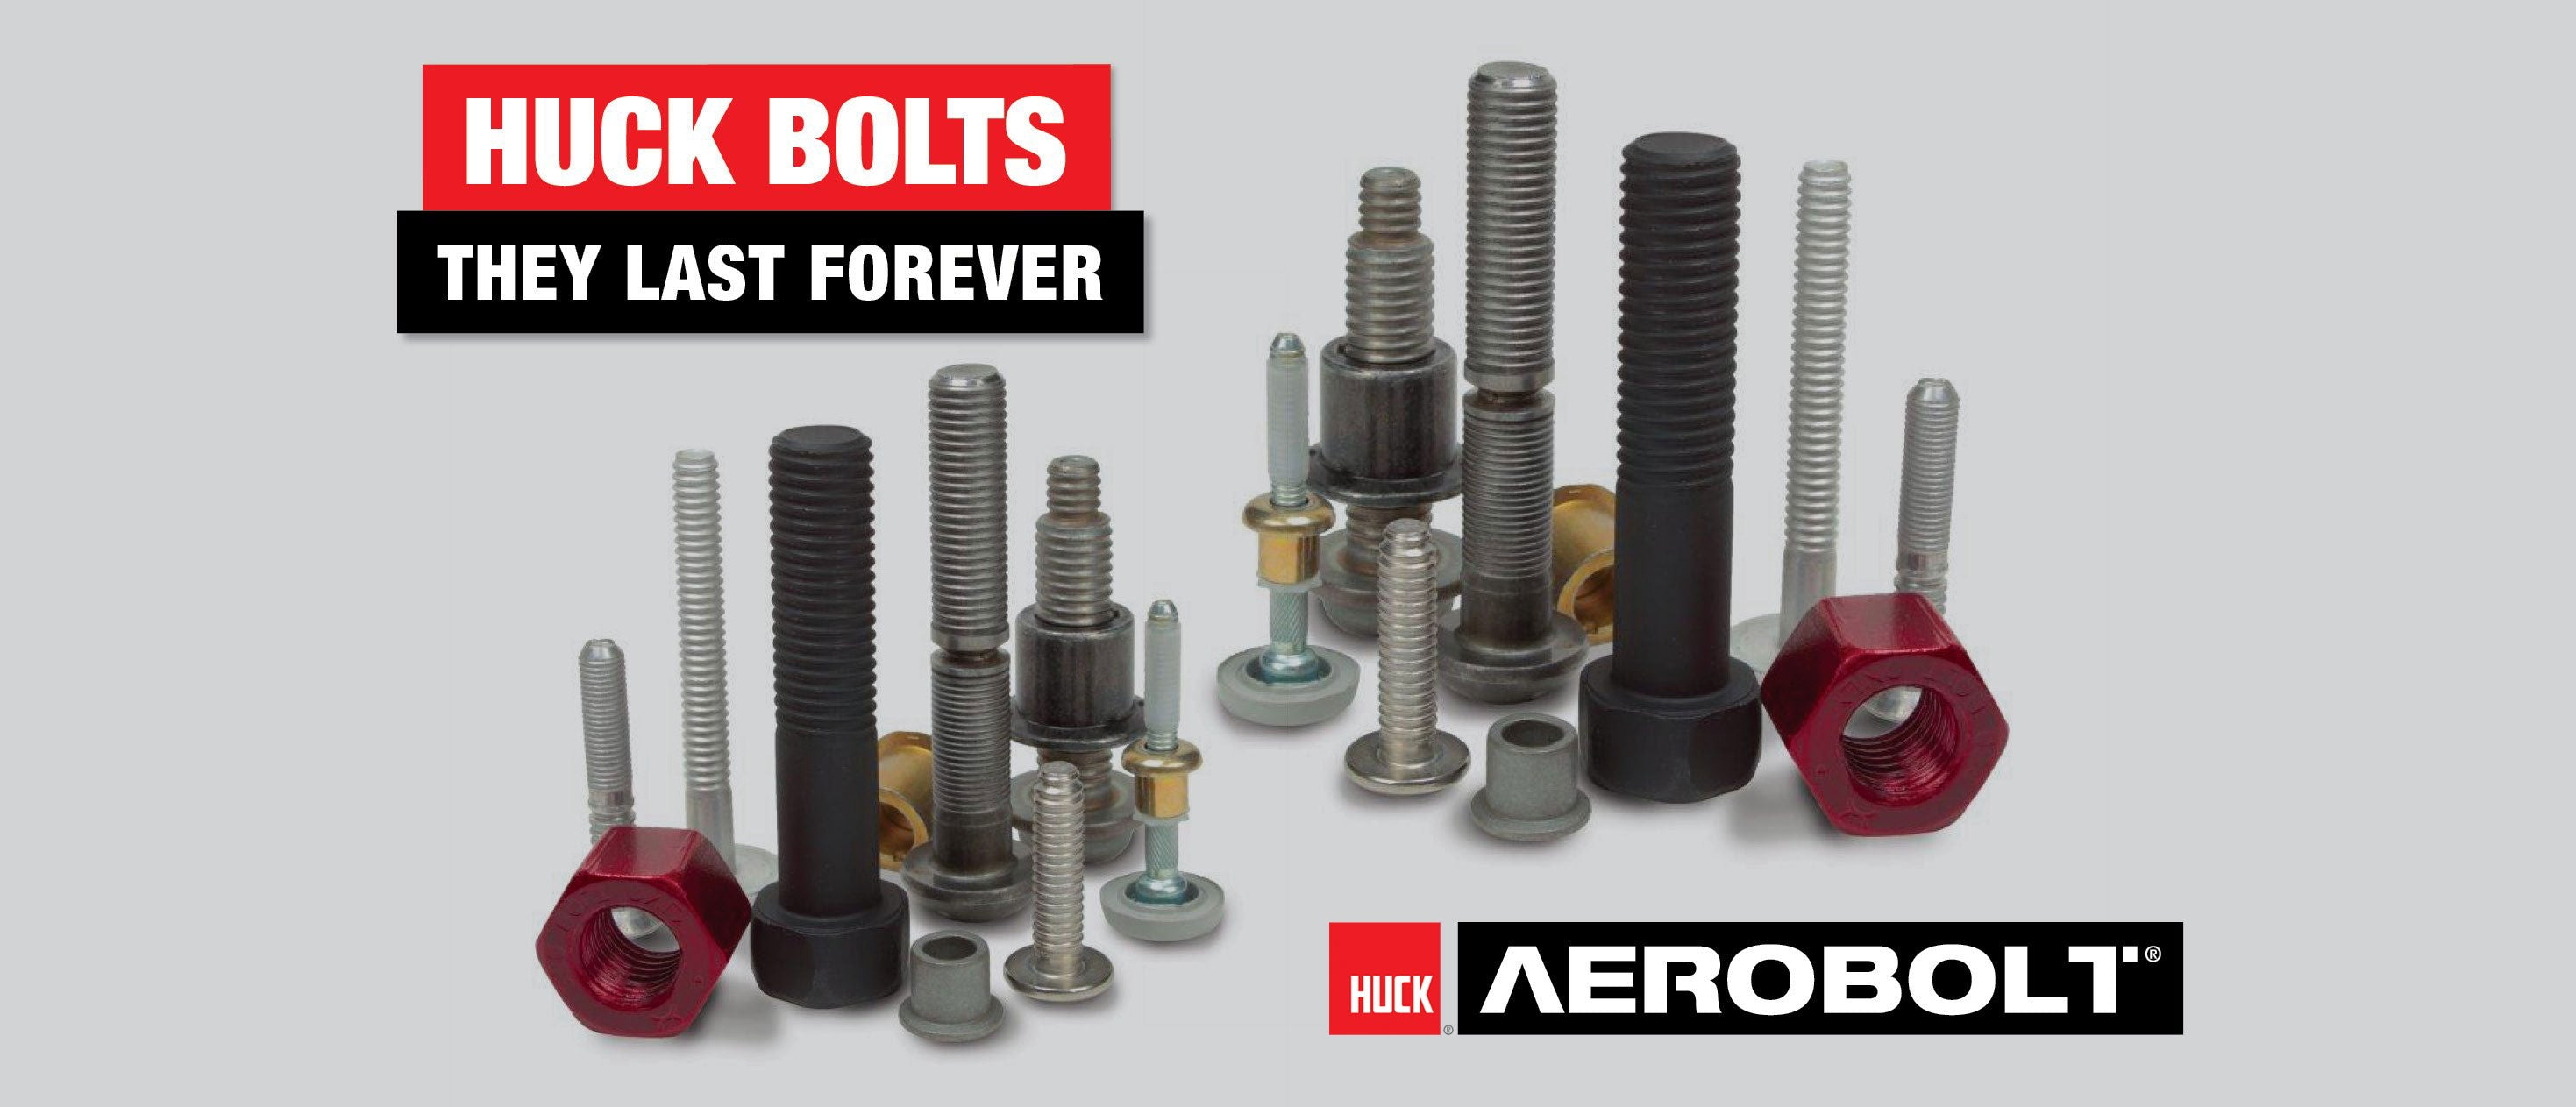 Huck Bolts - They Last Forever